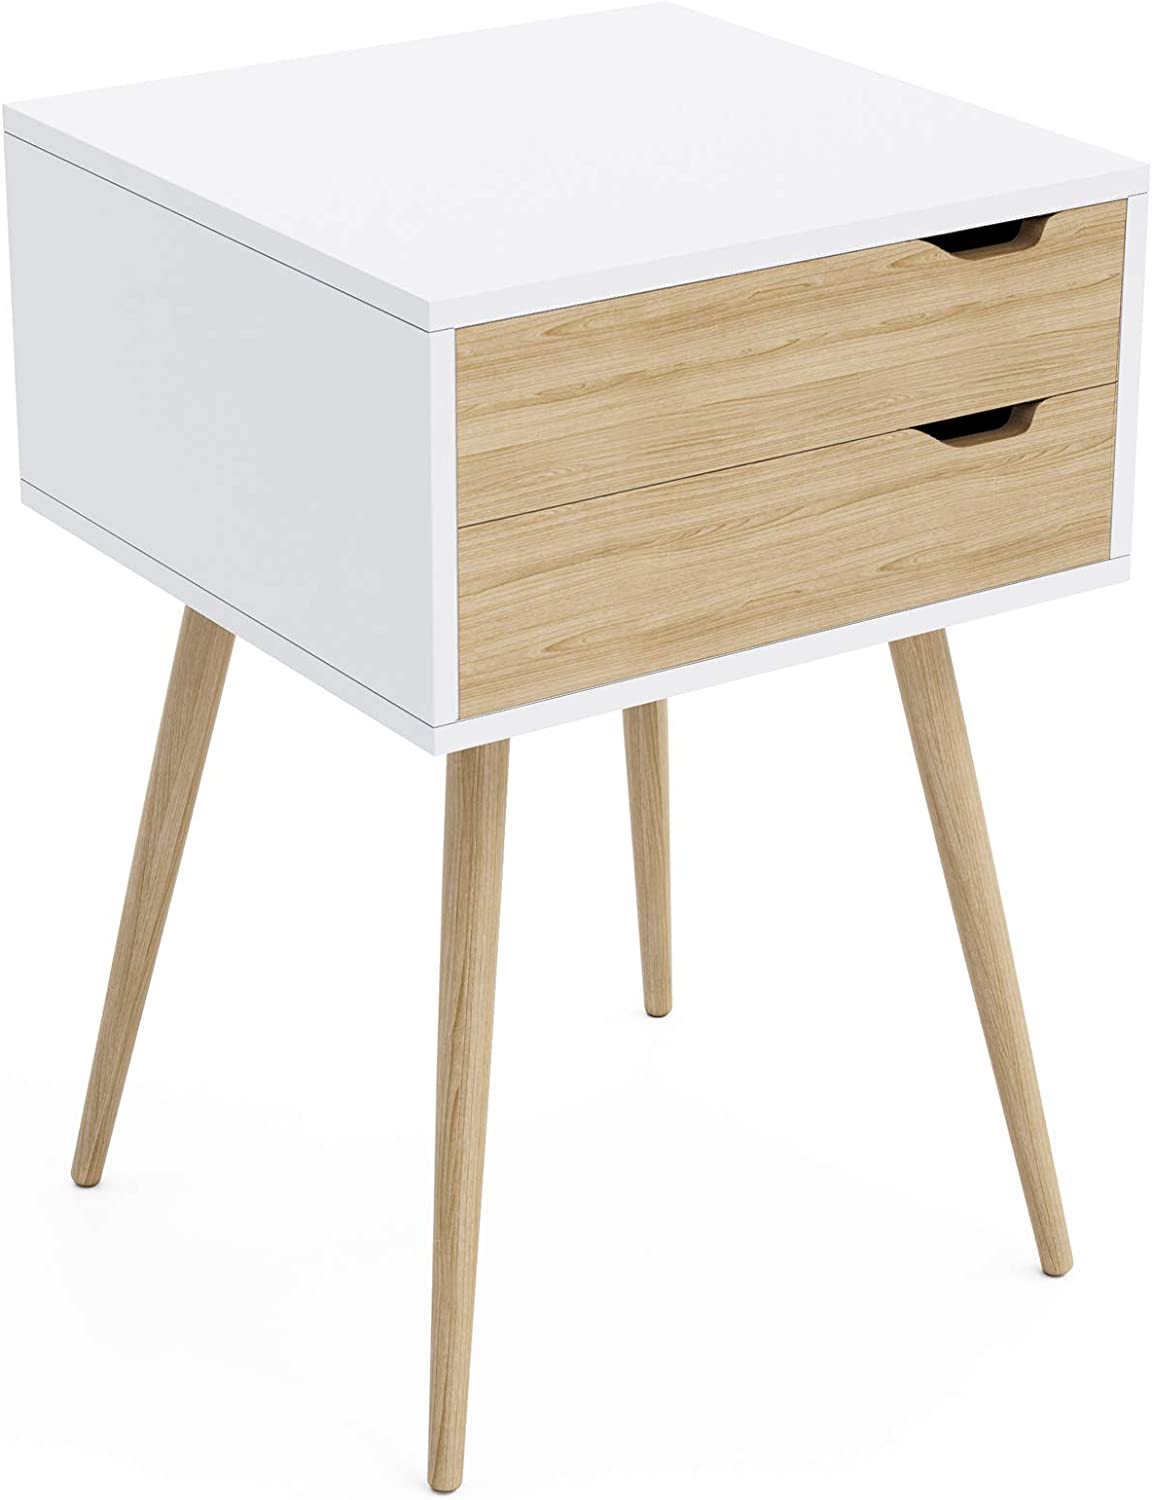 Jamesdar Blythe 2-Drawer Side Table, 15.7